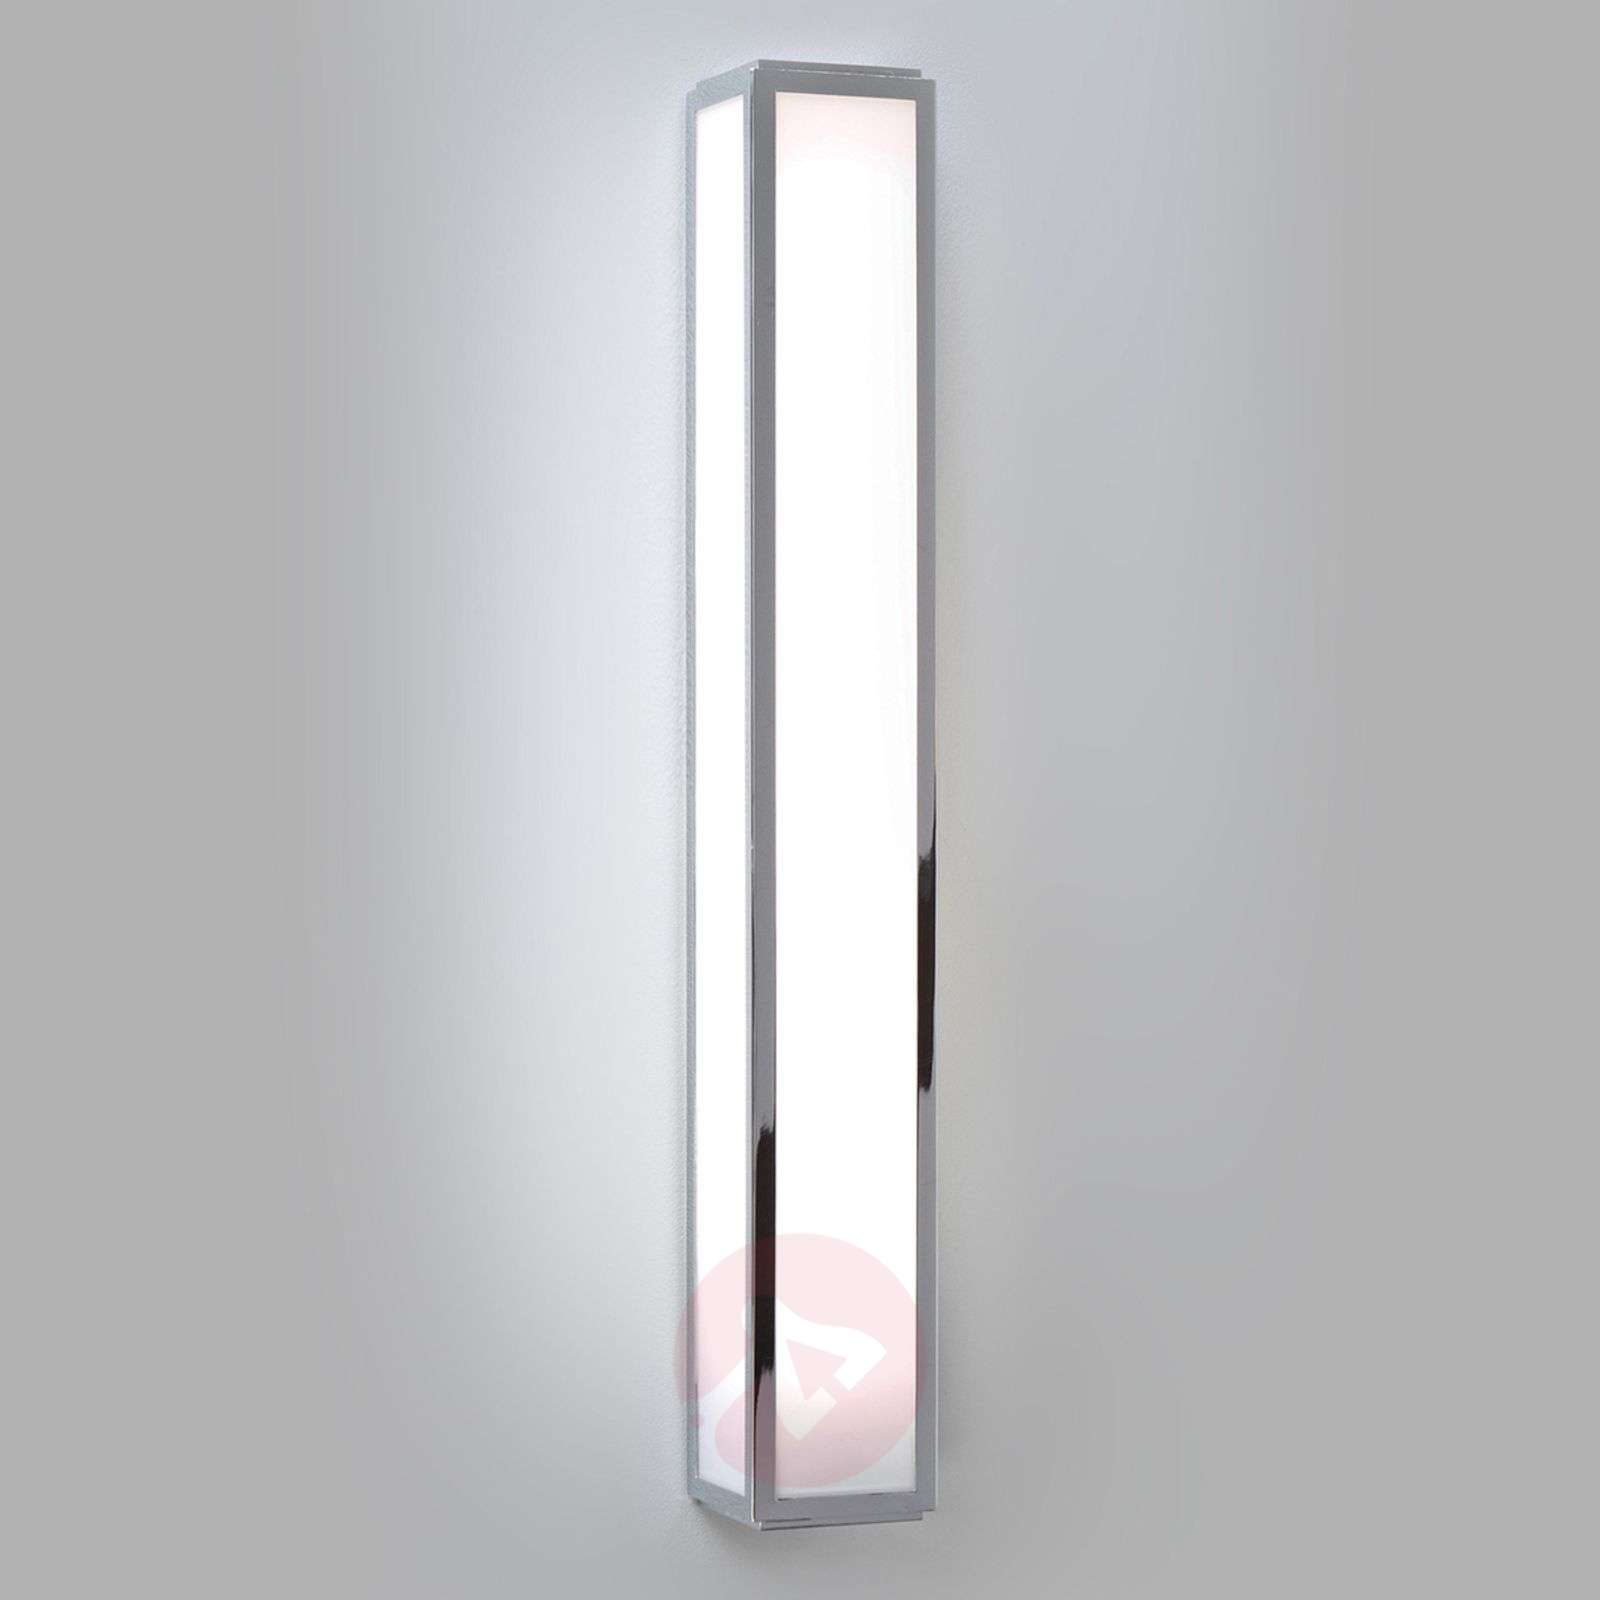 Mashiko Choice Wall Light Length 50 cm-1020049-03